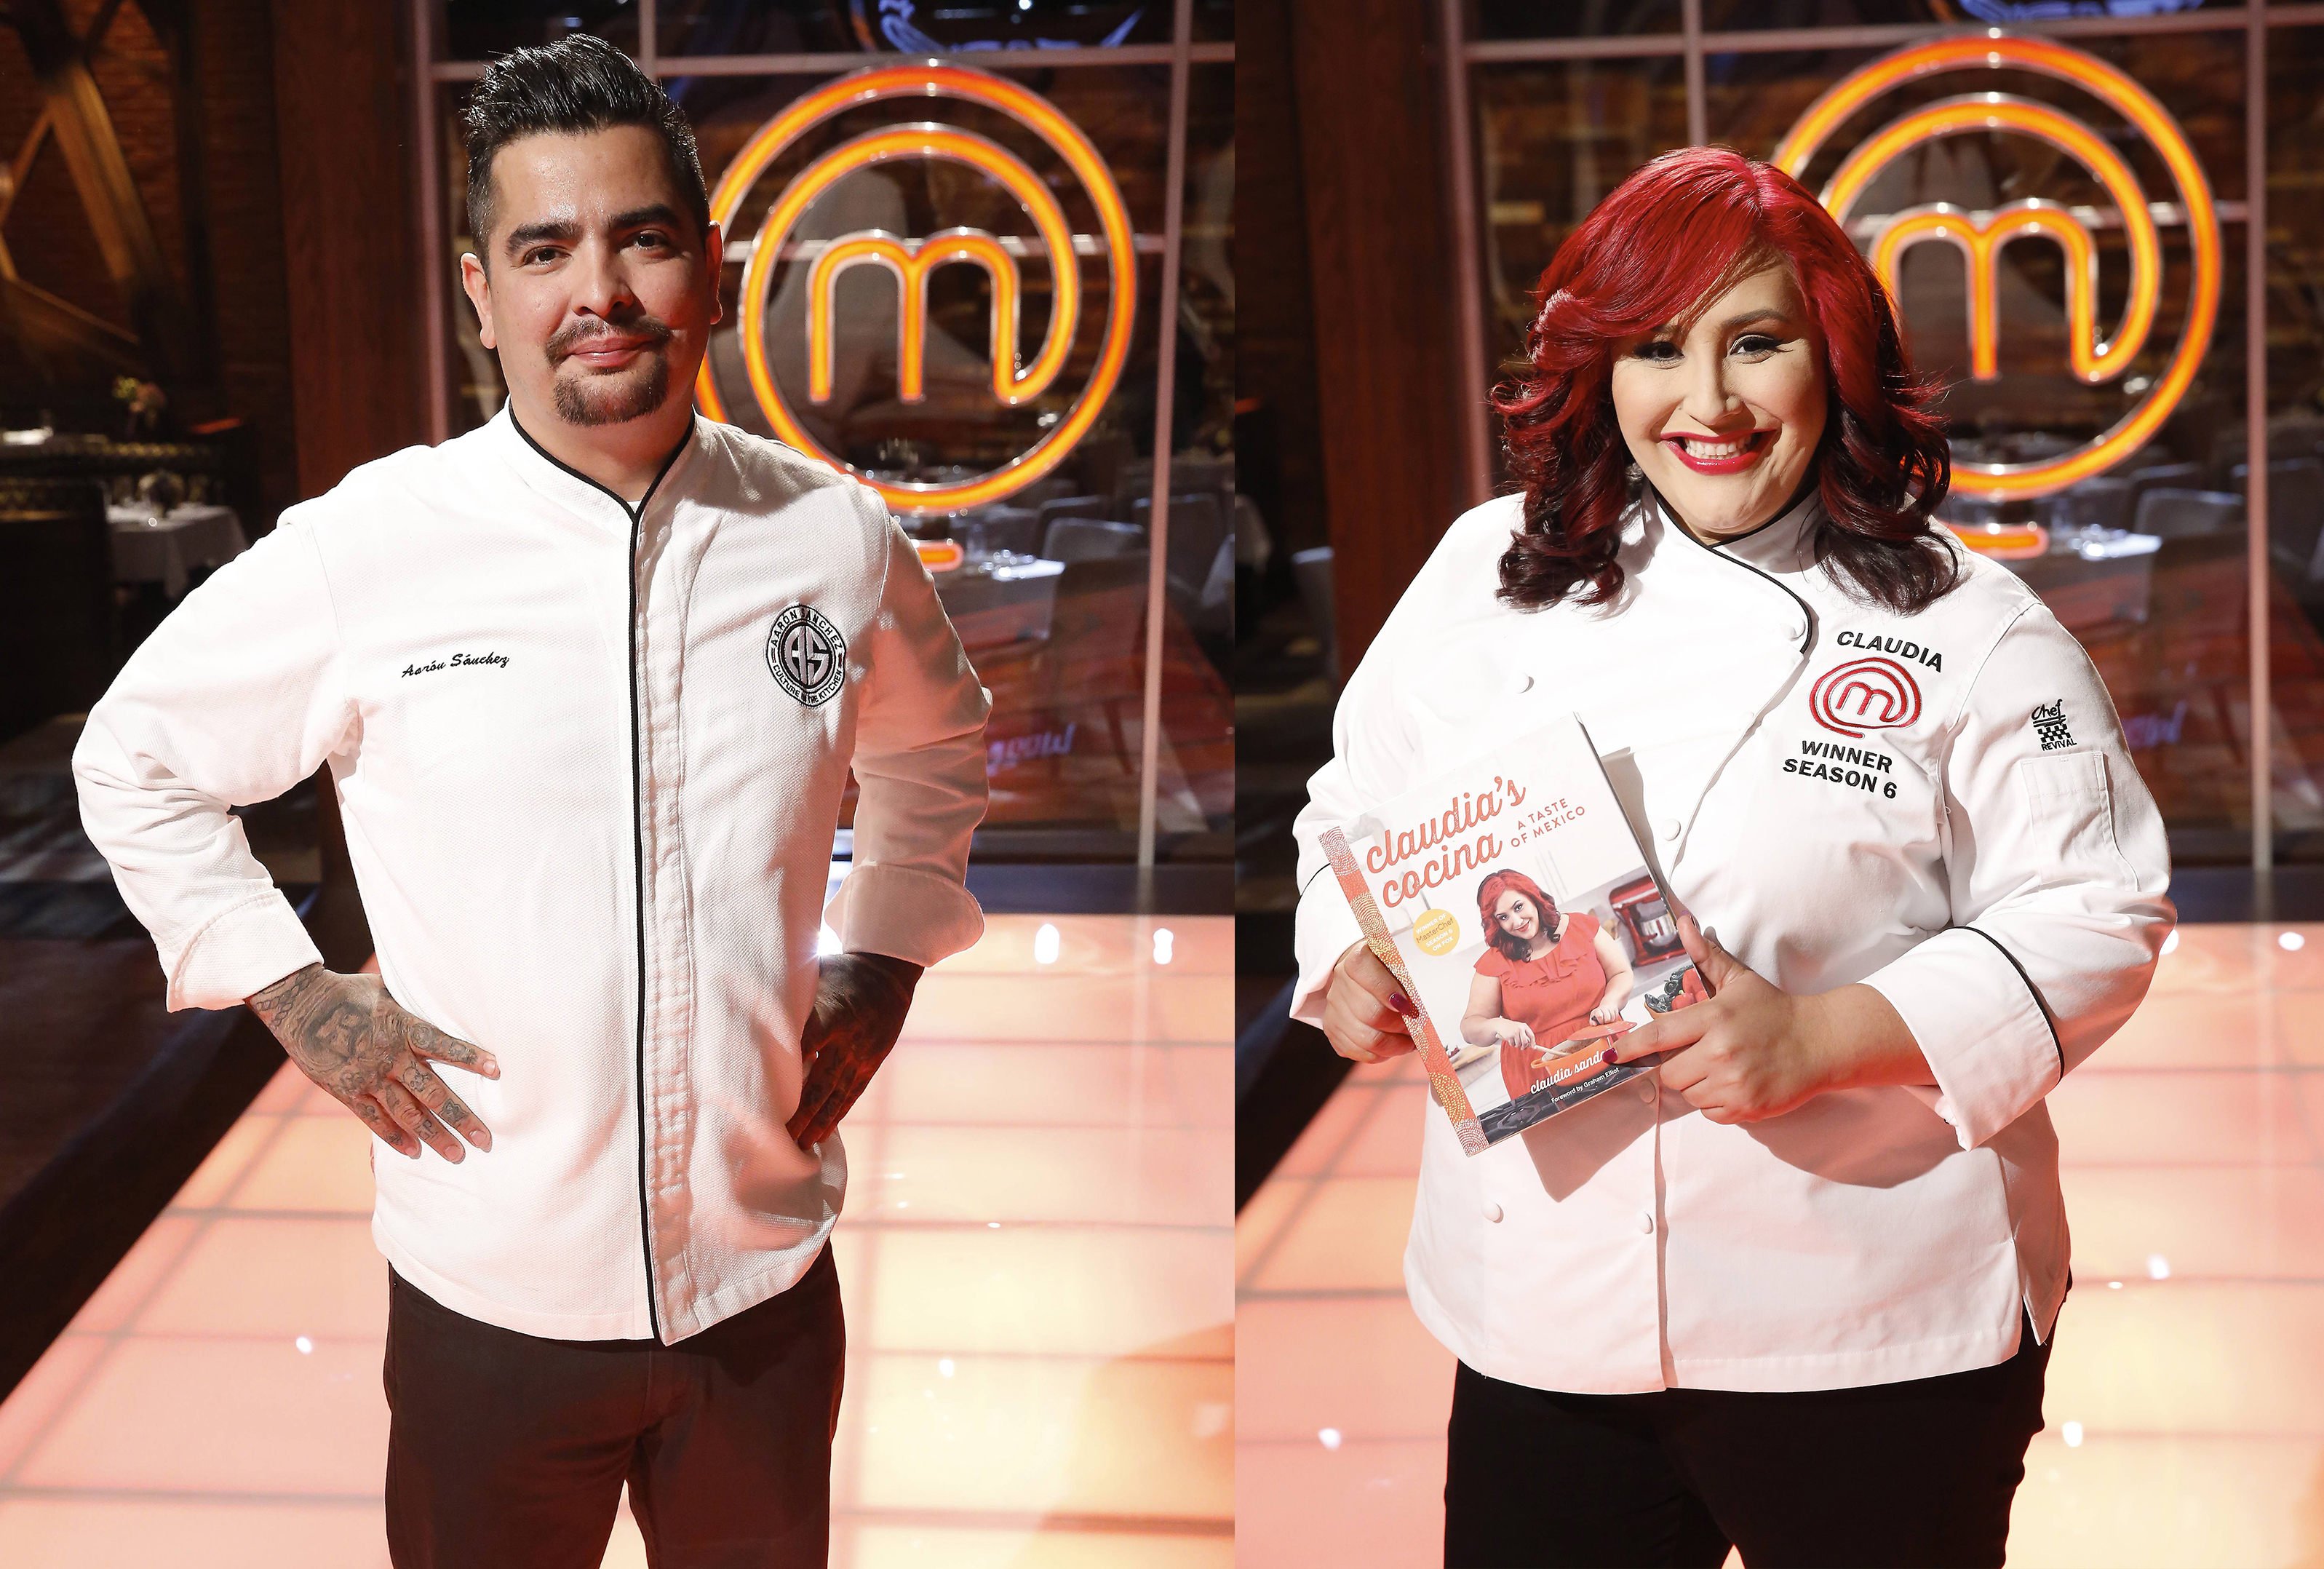 Cocina Masterchef 'masterchef' Season 7: When, Where To Watch Aarón Sánchez